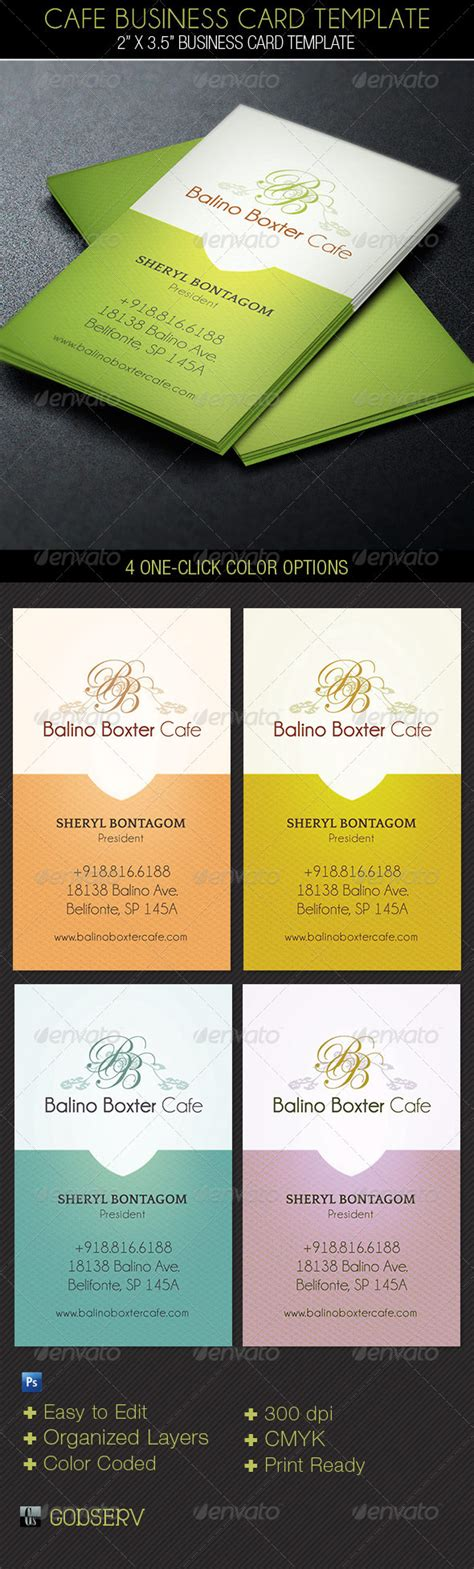 behance business card template cafe business card template on behance